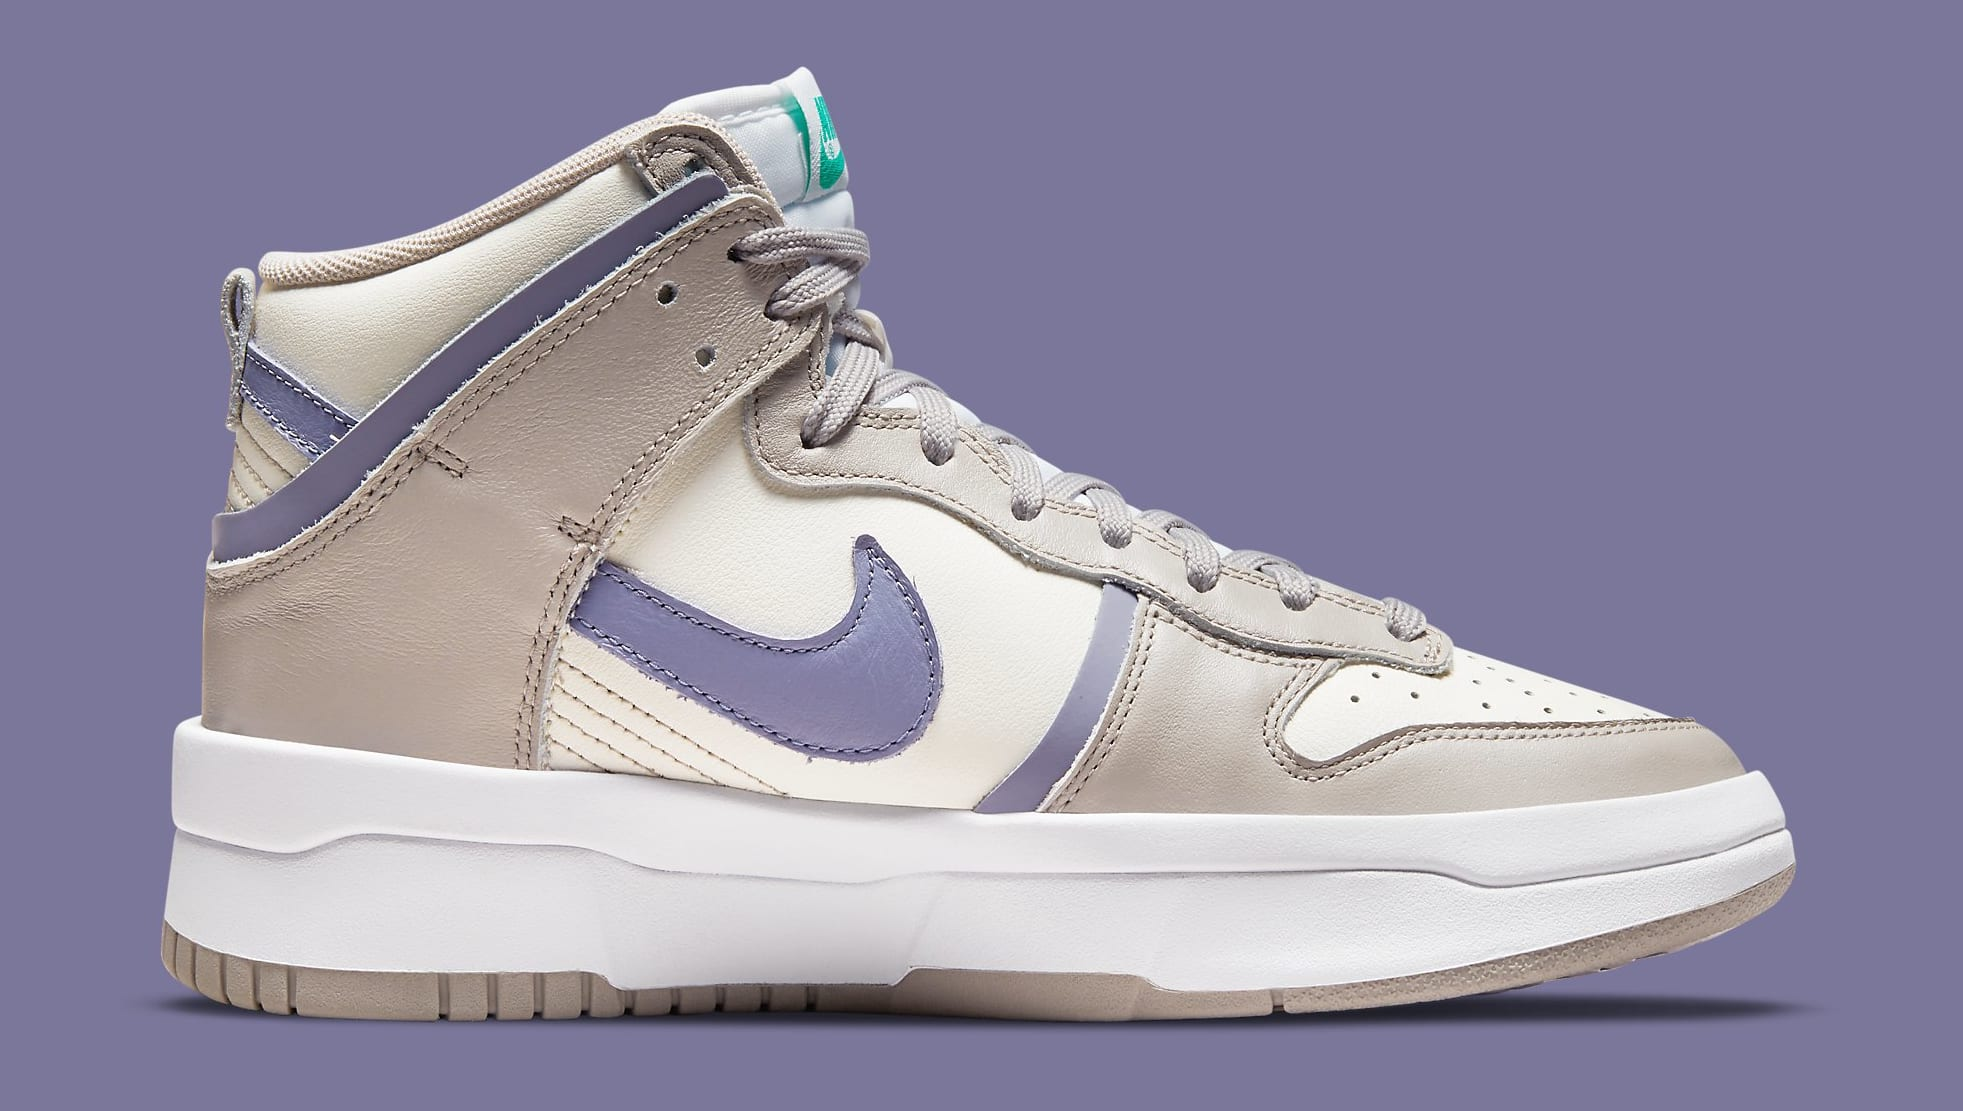 Nike Dunk High Up 'Iron Purple' DH3718-101 Medial